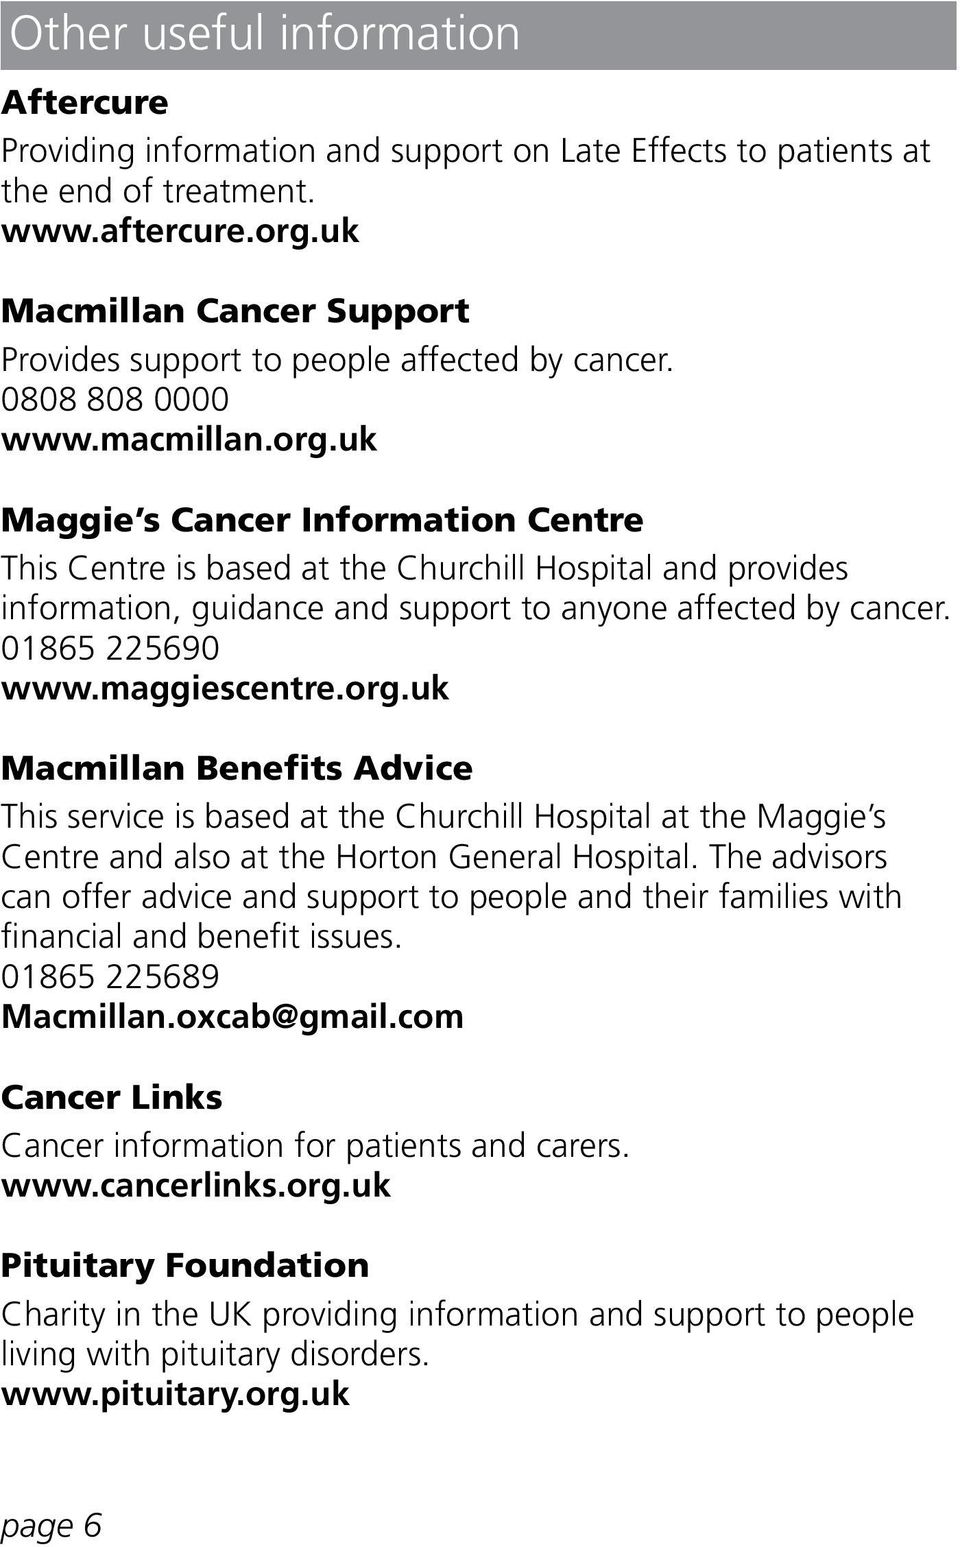 uk Maggie s Cancer Information Centre This Centre is based at the Churchill Hospital and provides information, guidance and support to anyone affected by cancer. 01865 225690 www.maggiescentre.org.